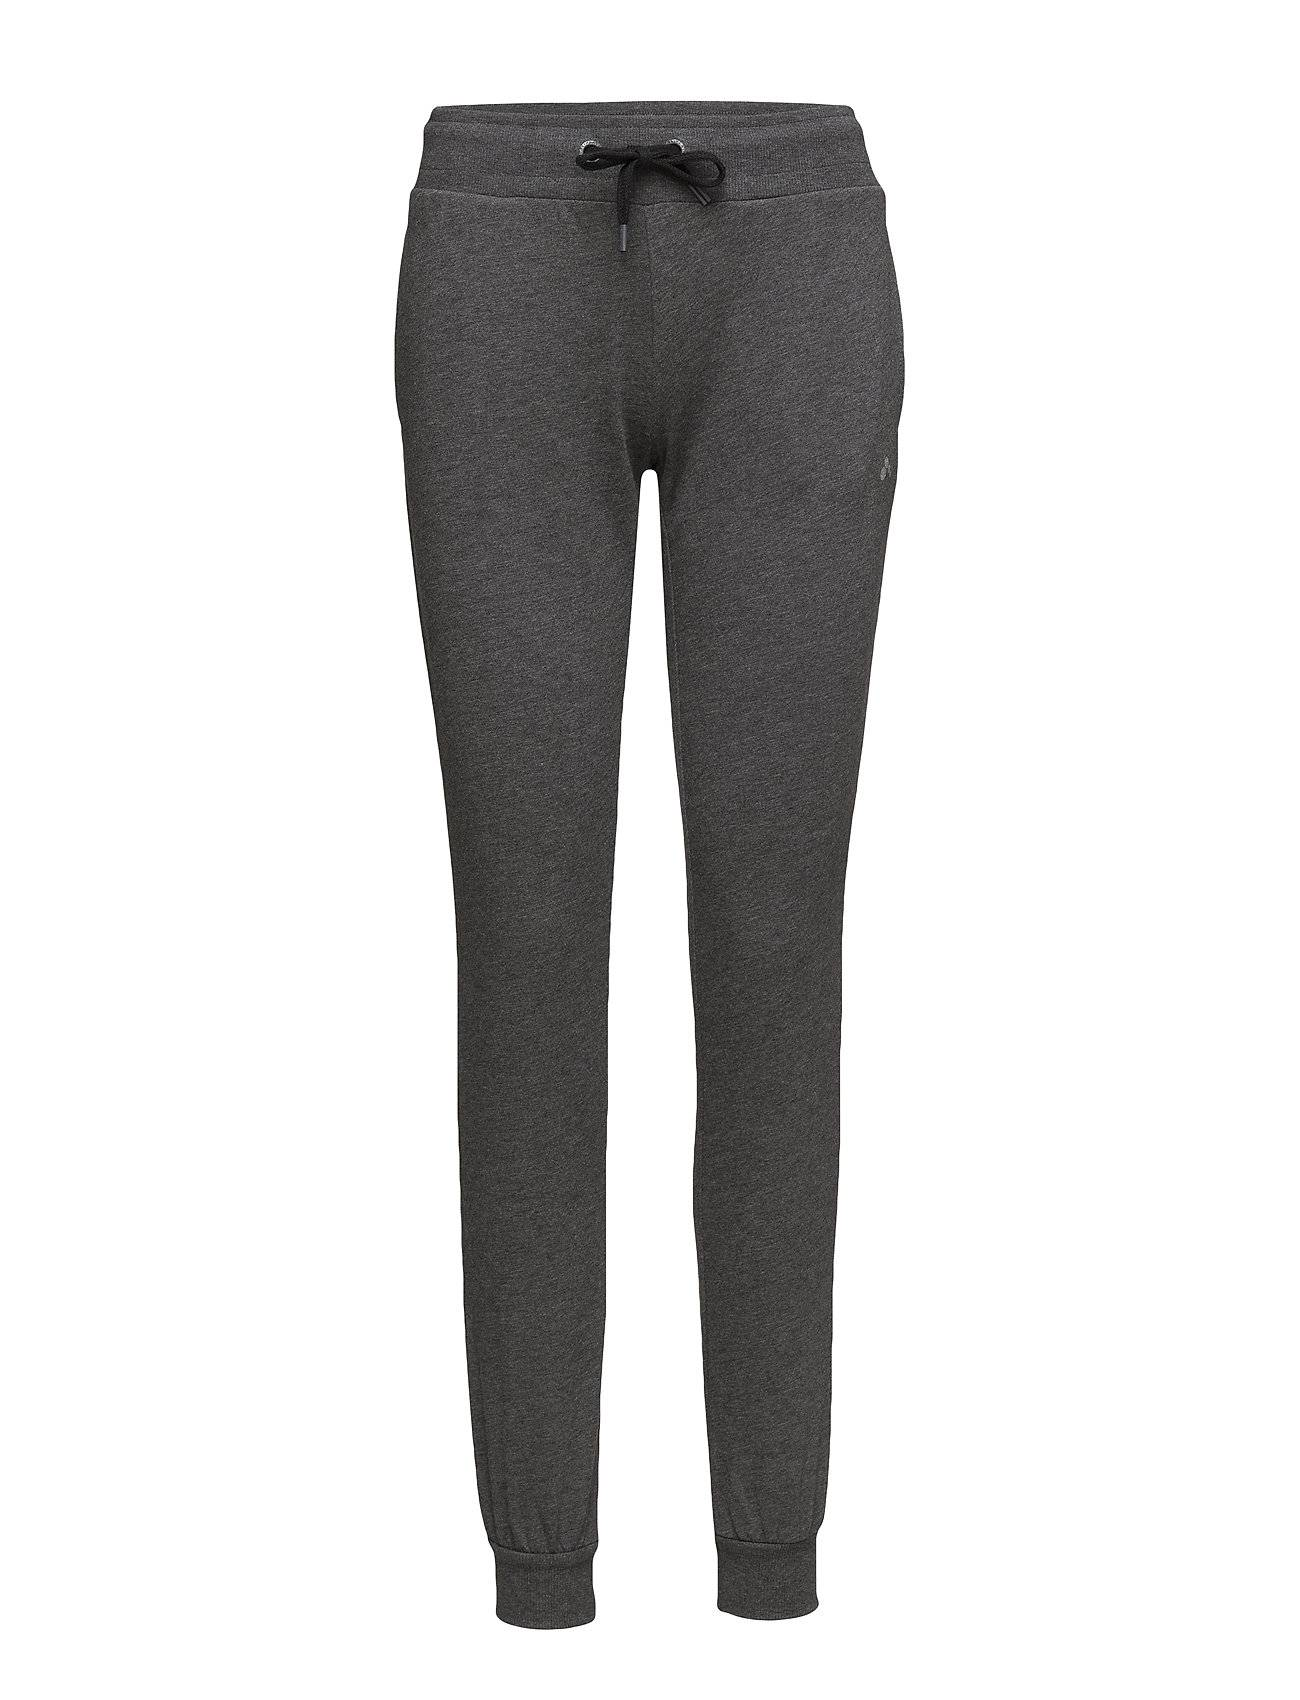 Image of Only Play Onplina Sweat Pants - Opus Collegehousut Olohousut Harmaa Only Play